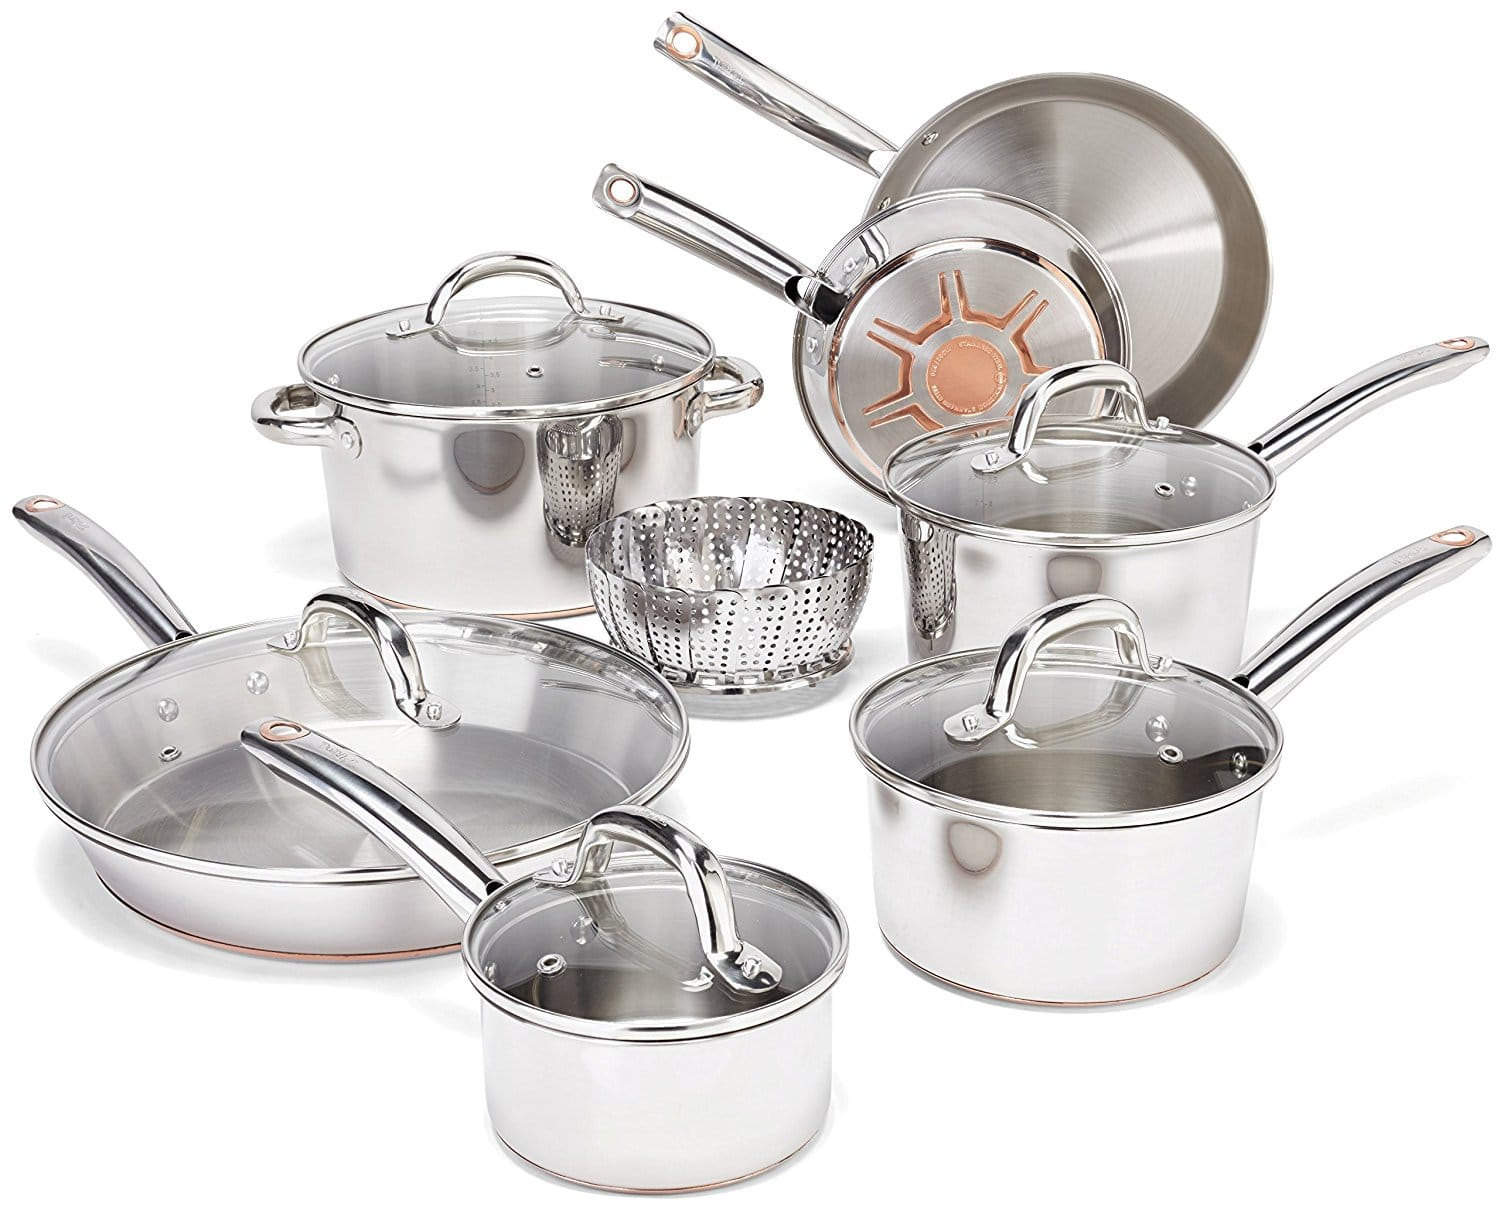 top 10 best stainless steel cookware sets in 2018 buying guide topreviewproducts. Black Bedroom Furniture Sets. Home Design Ideas